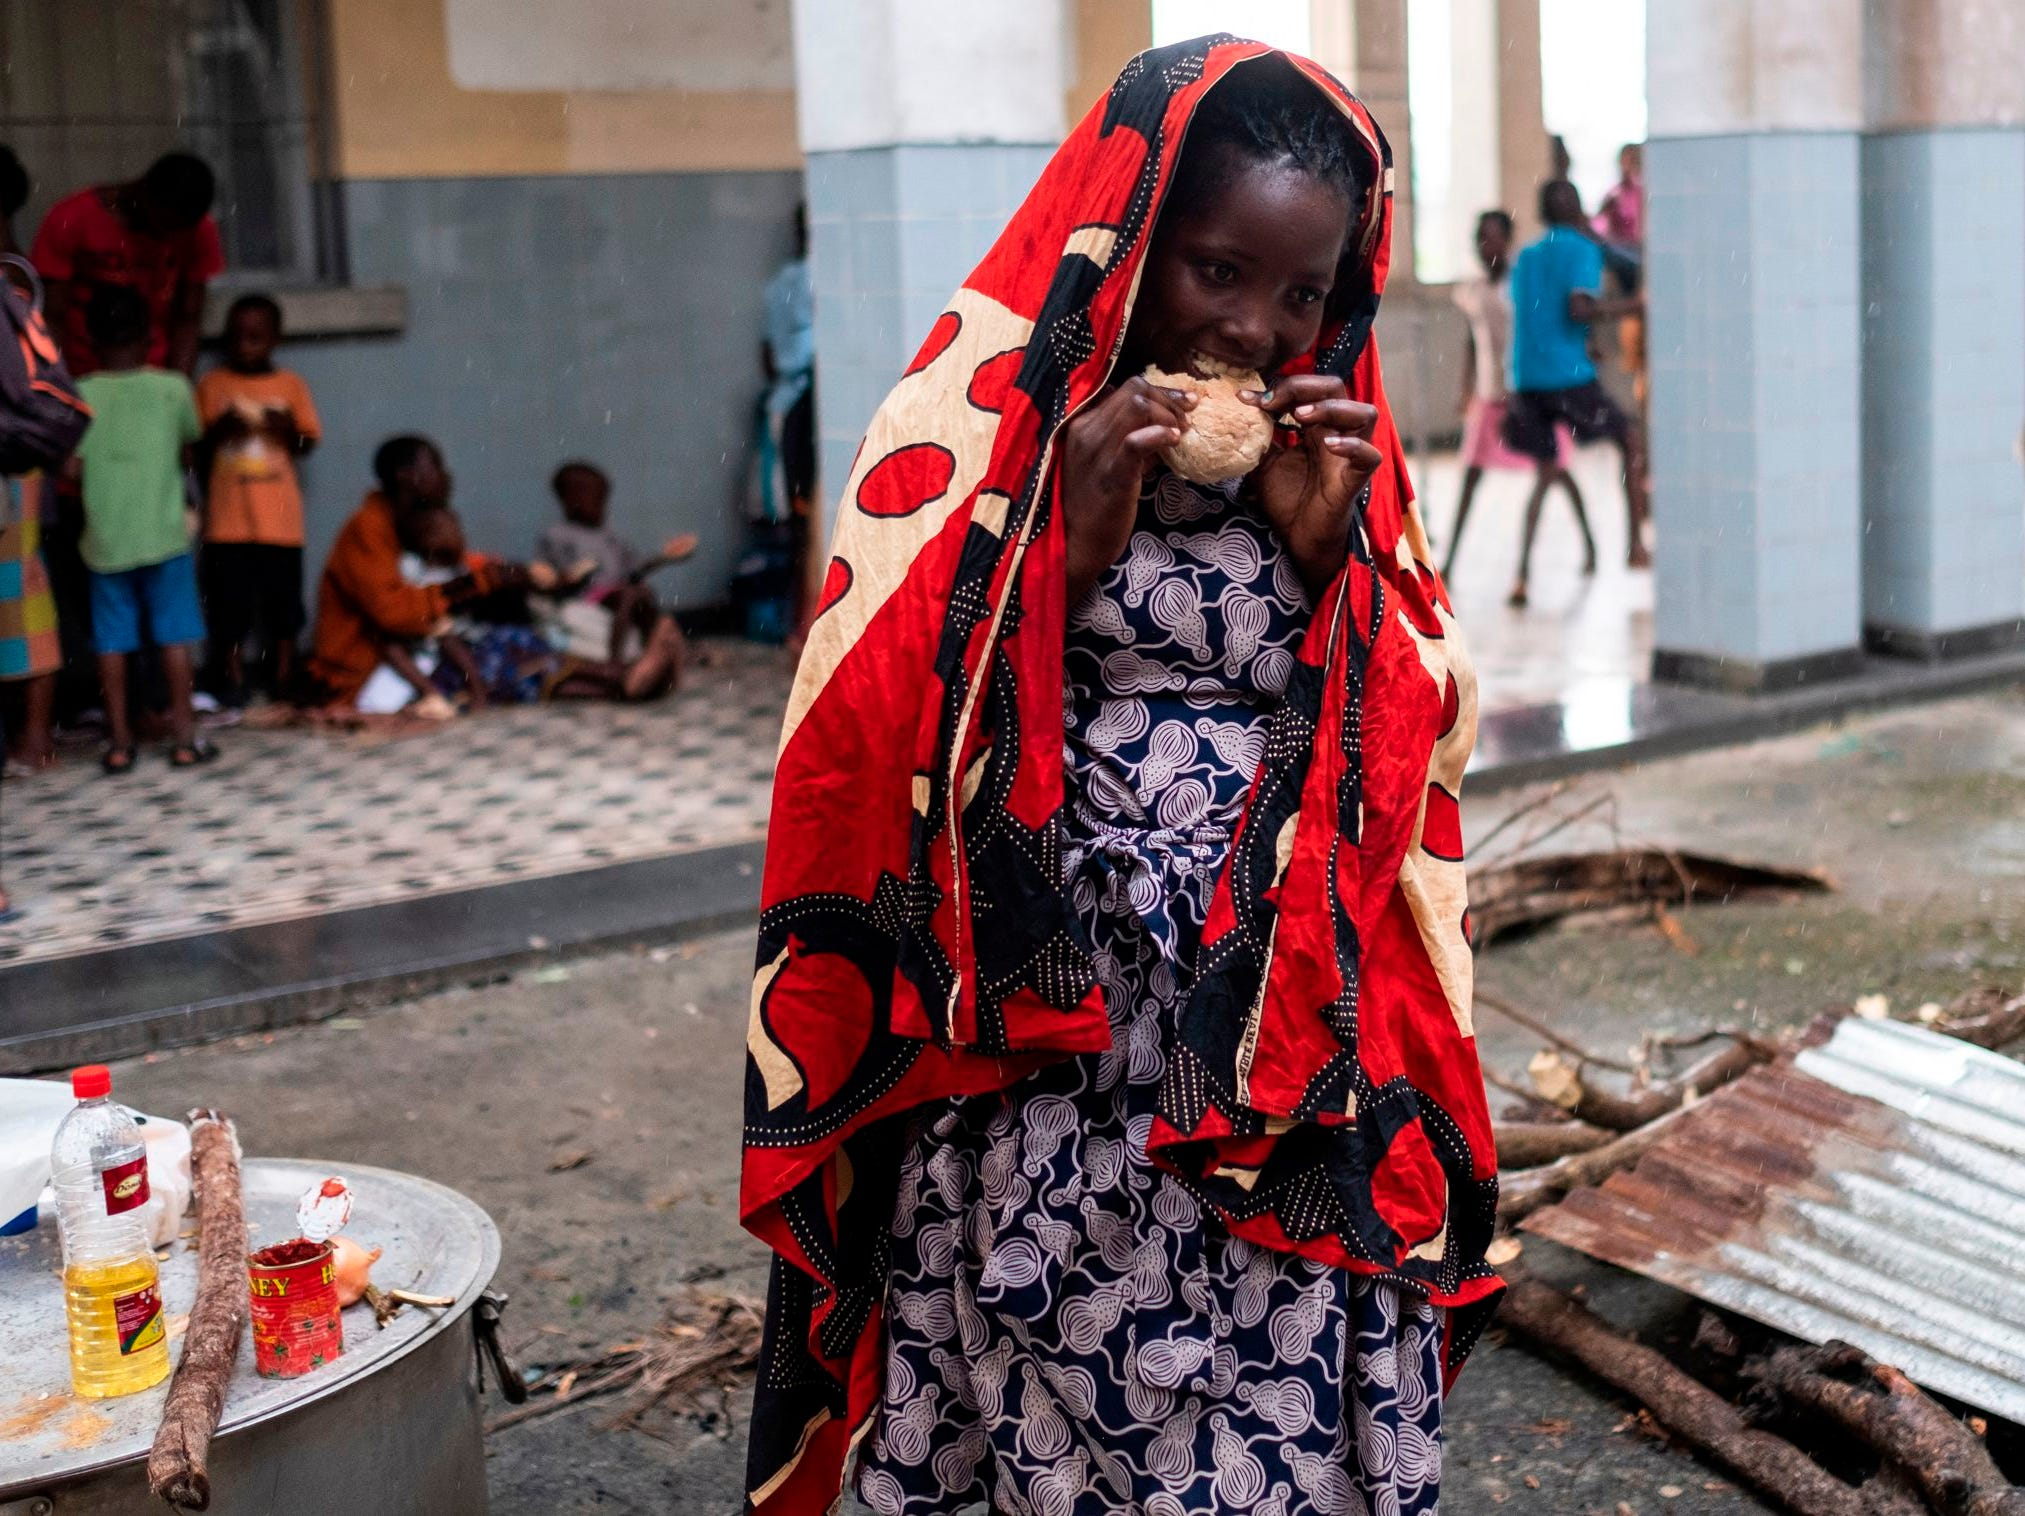 A woman with a scarf on her head to protect her from the rain, eats bread that has been given to displaced people at the Samora Machel High School in Beira, Mozambique, on March 23, 2019.